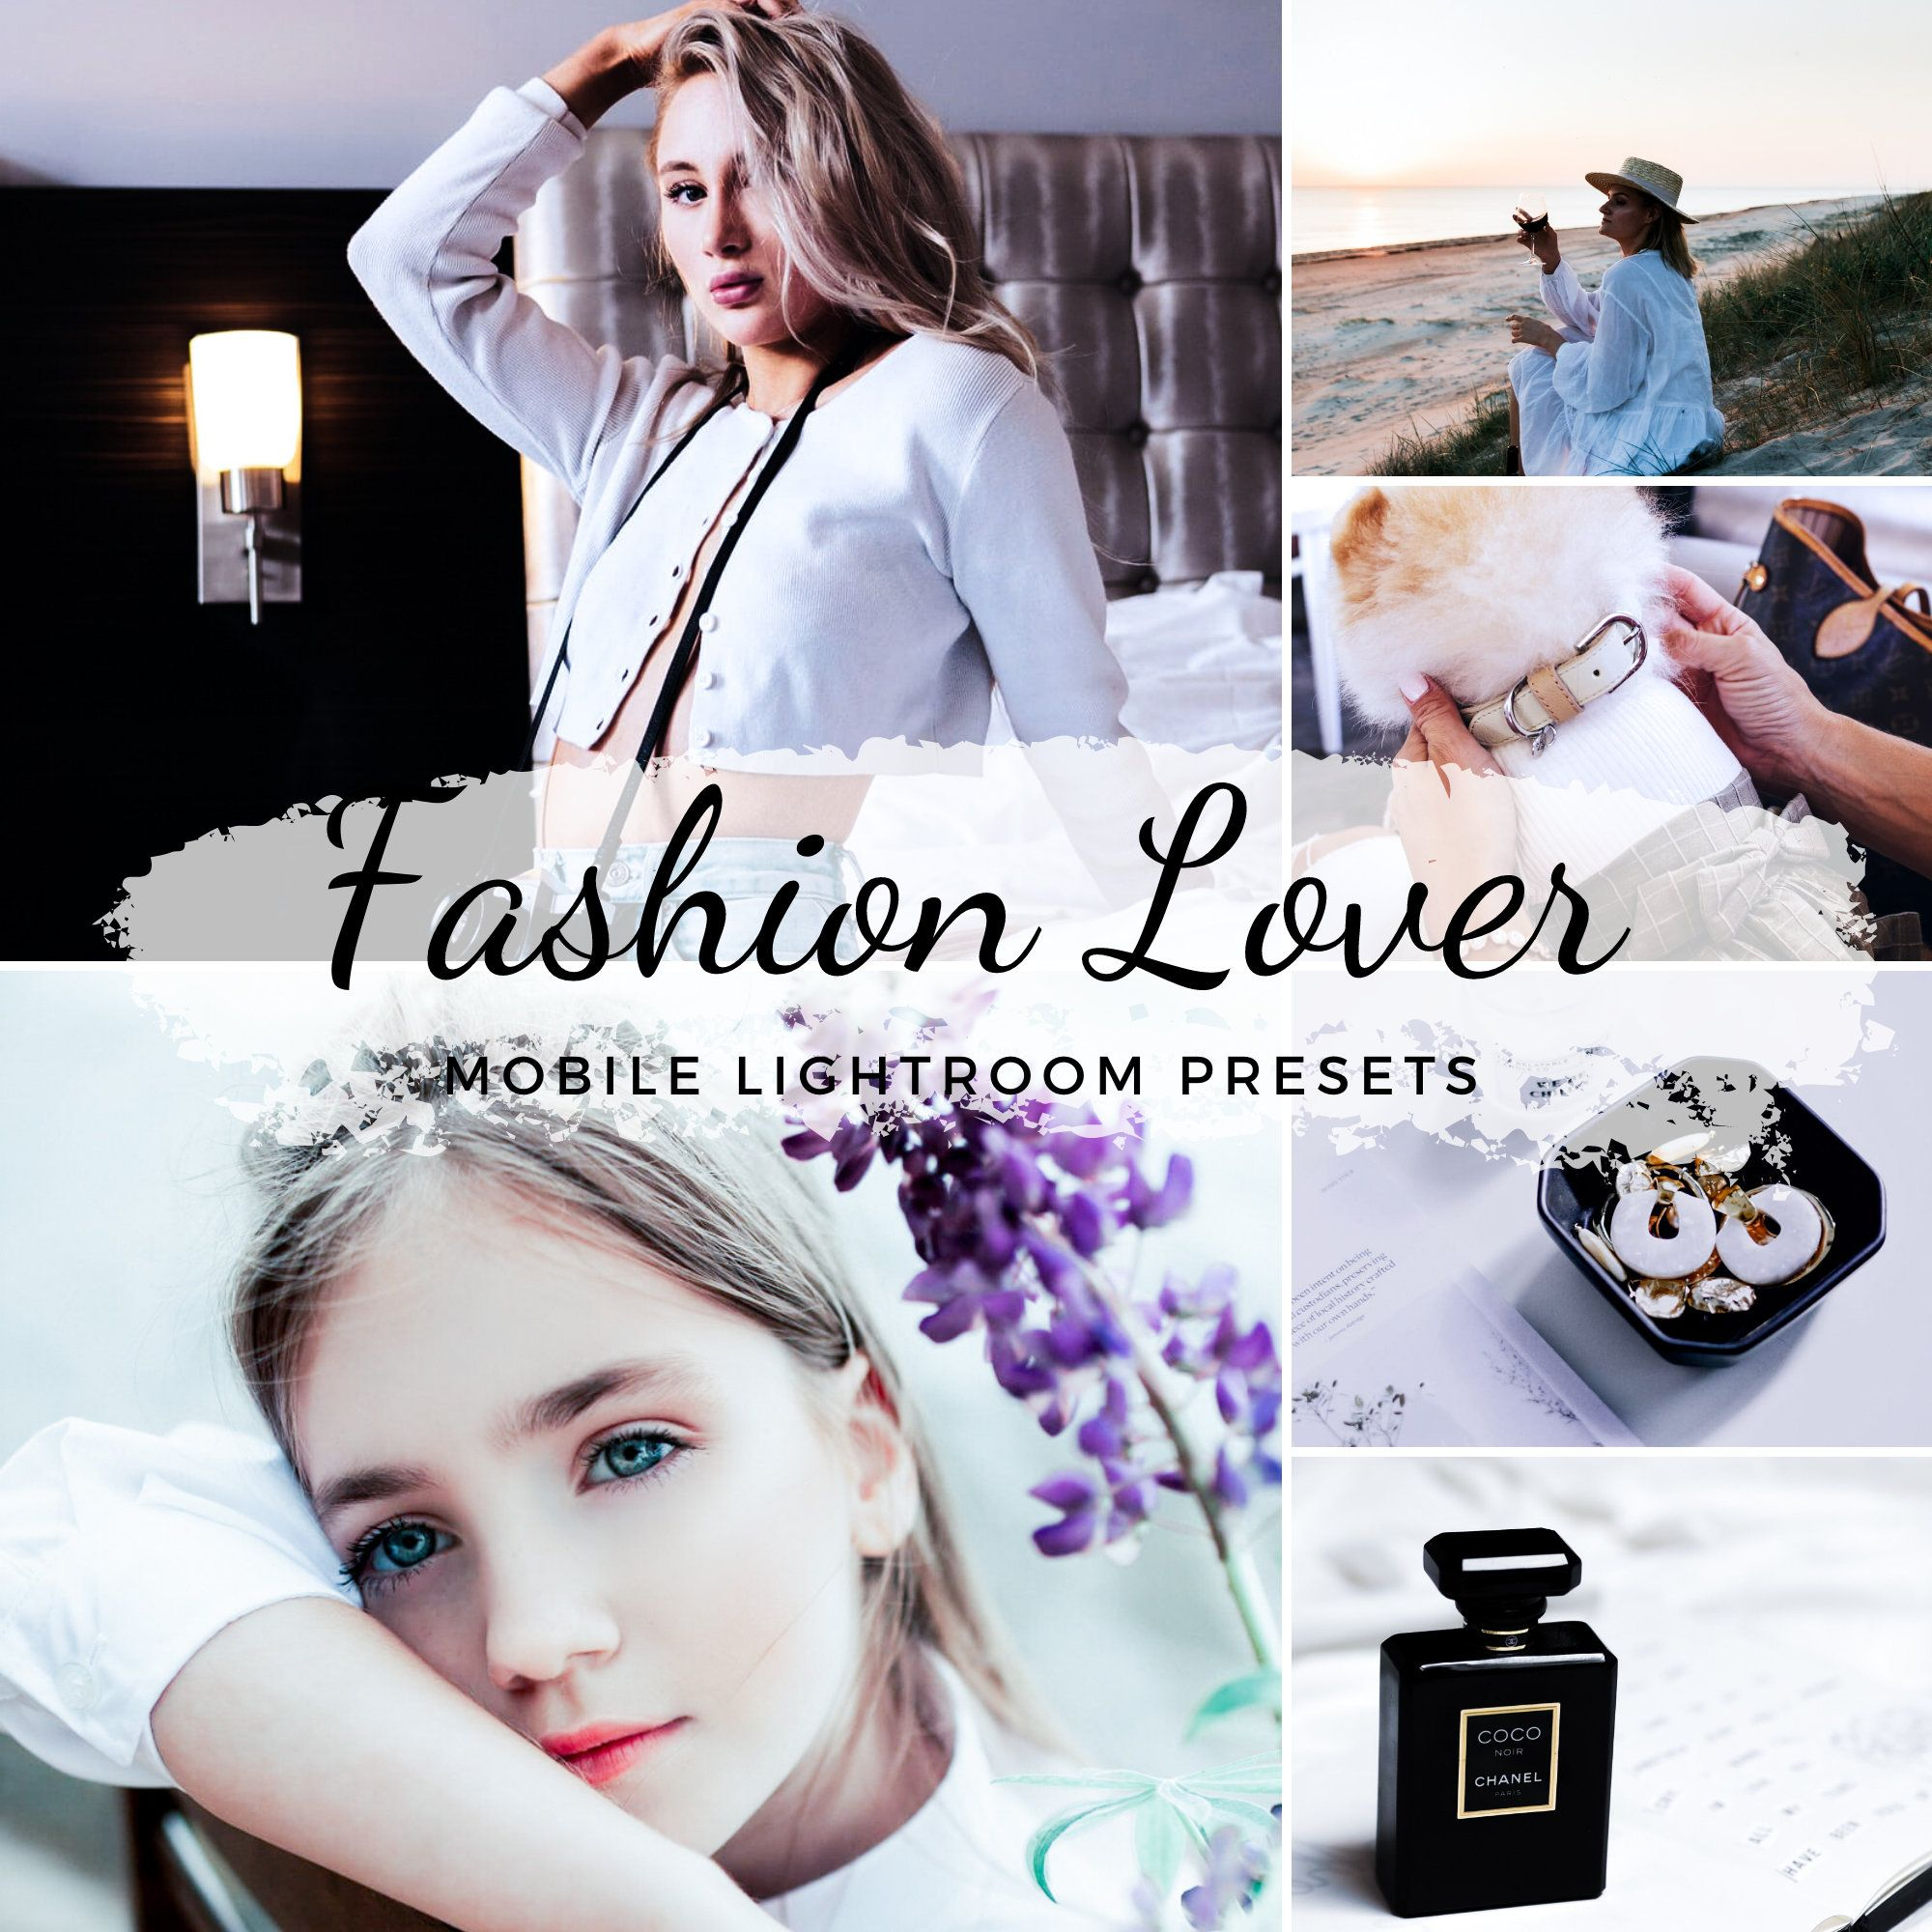 Mobile Lightroom Presets / Fashiongram Presets / Fashionable Bright Presets / Fashion Style Presets / Fashion Blogger / Instagram Filter